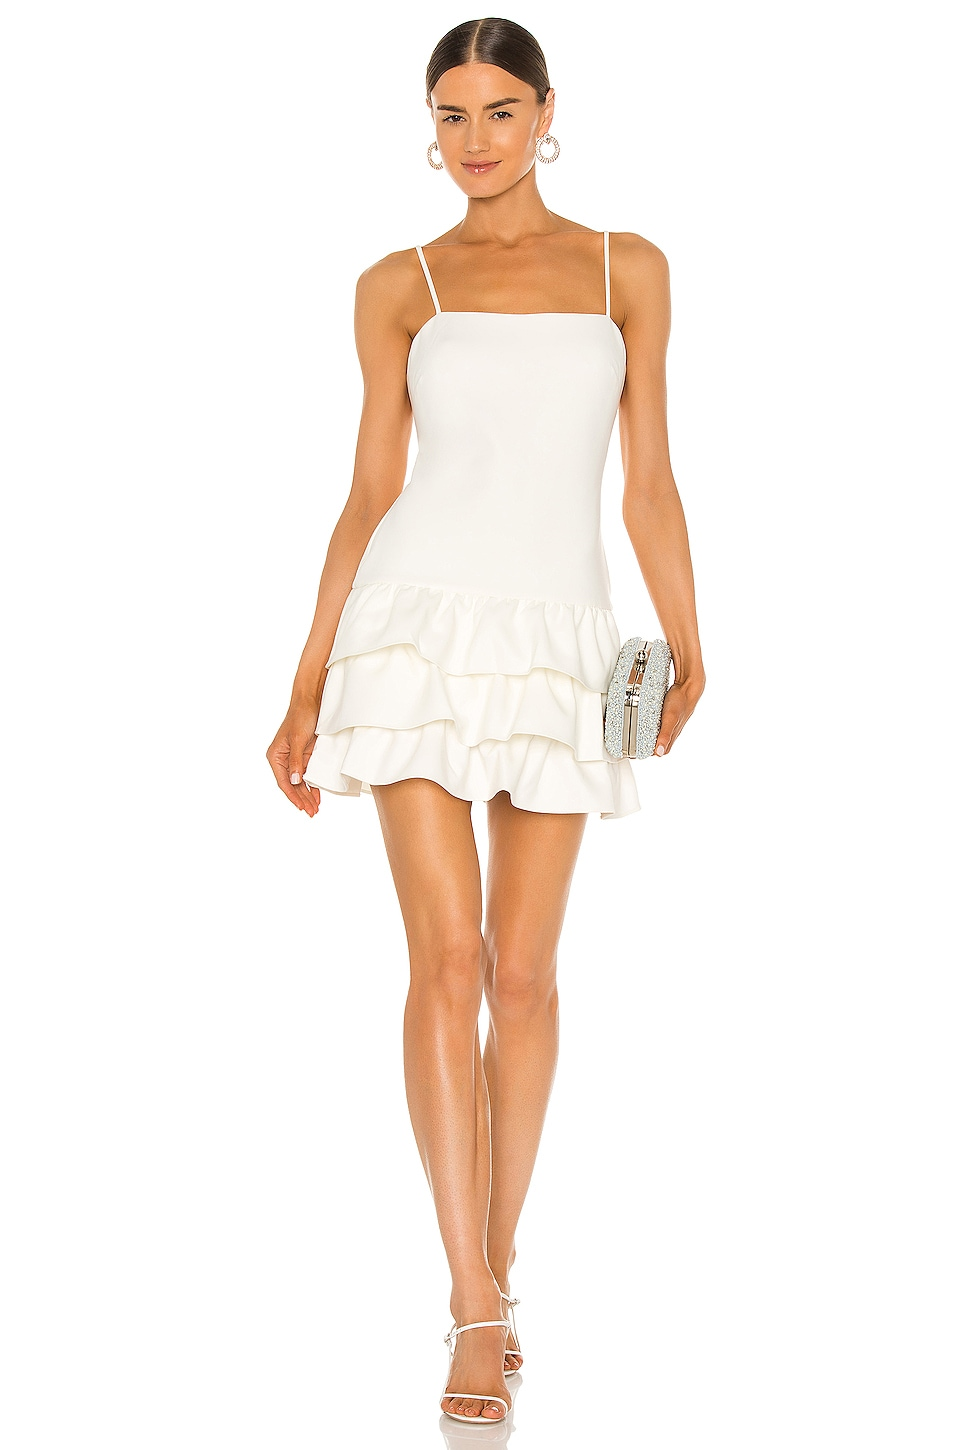 LIKELY Amica Dress in White